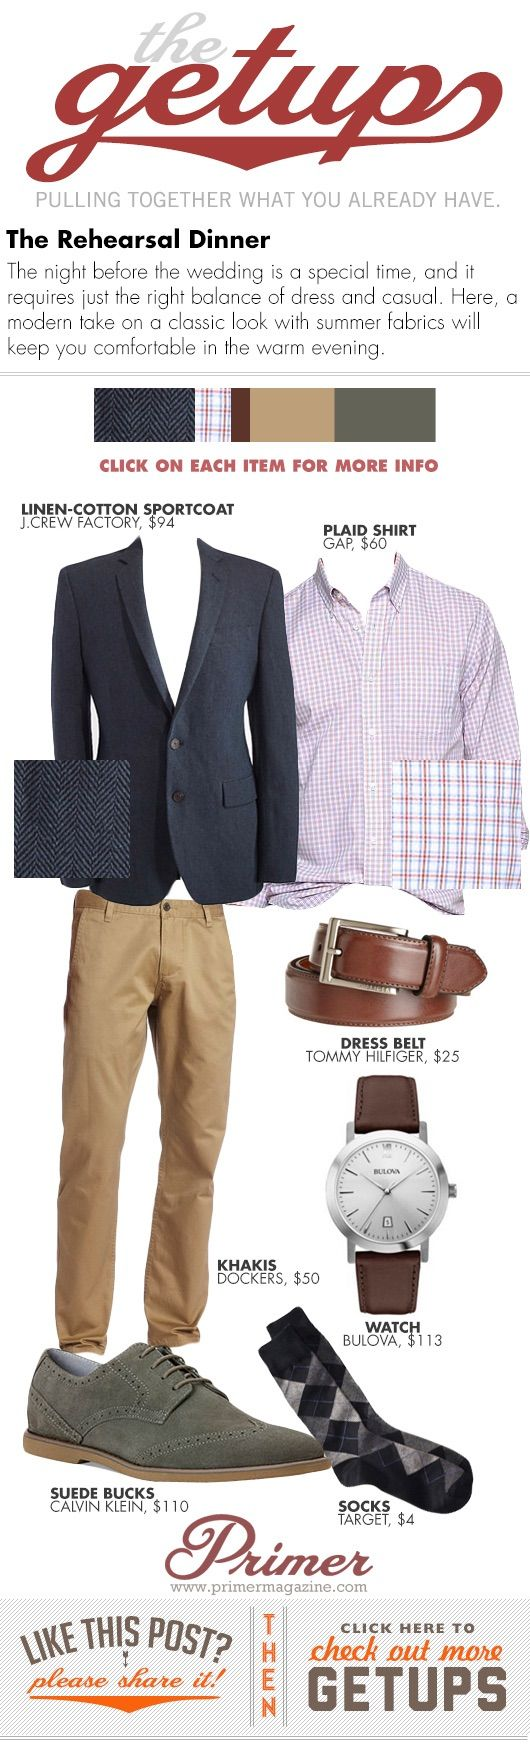 The Getup - The Rehearsal Dinner